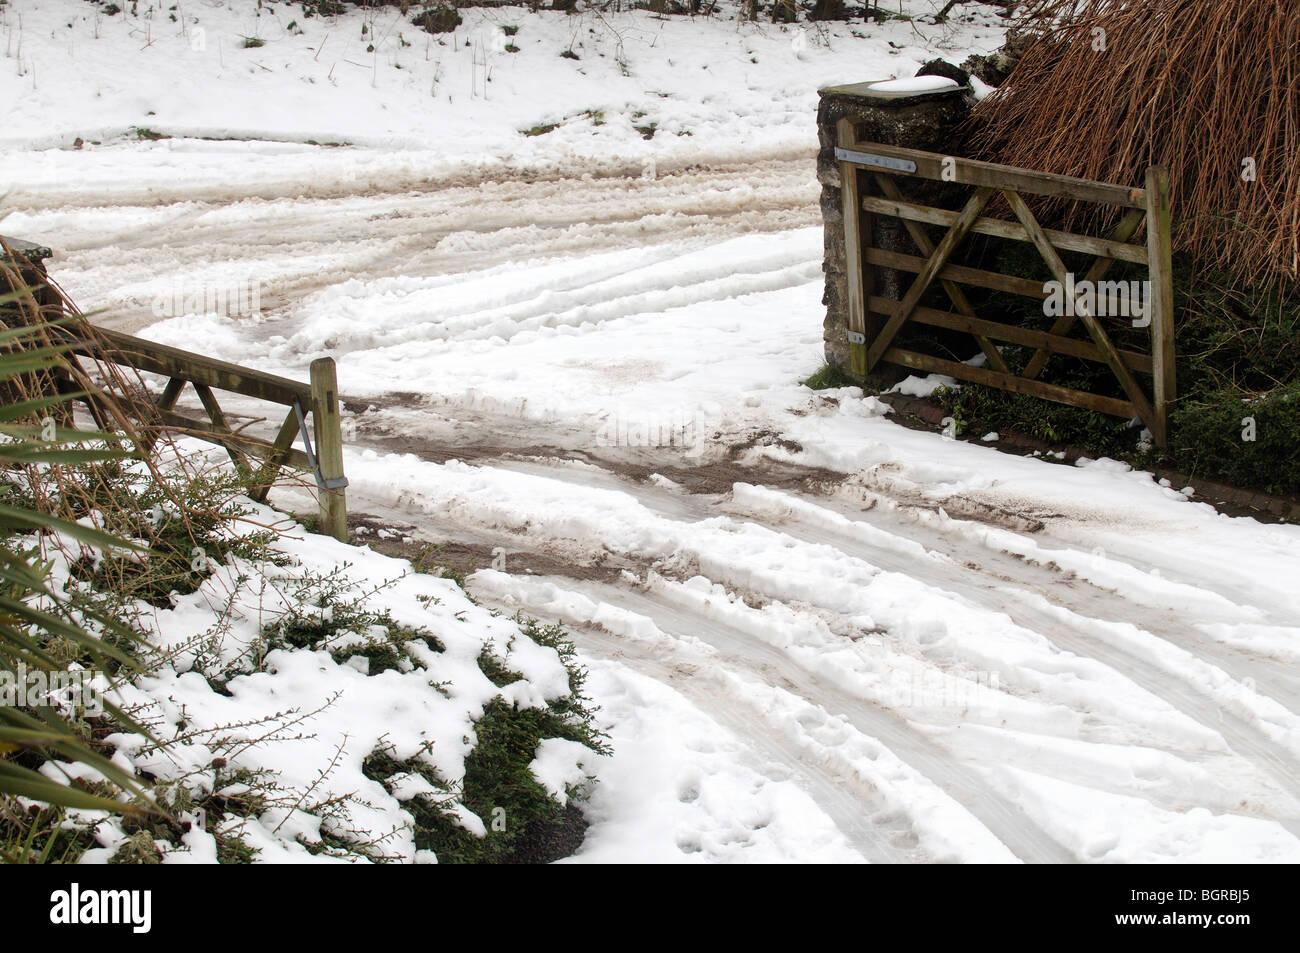 Open five bar gates with tyre tracks through the snow - Stock Image